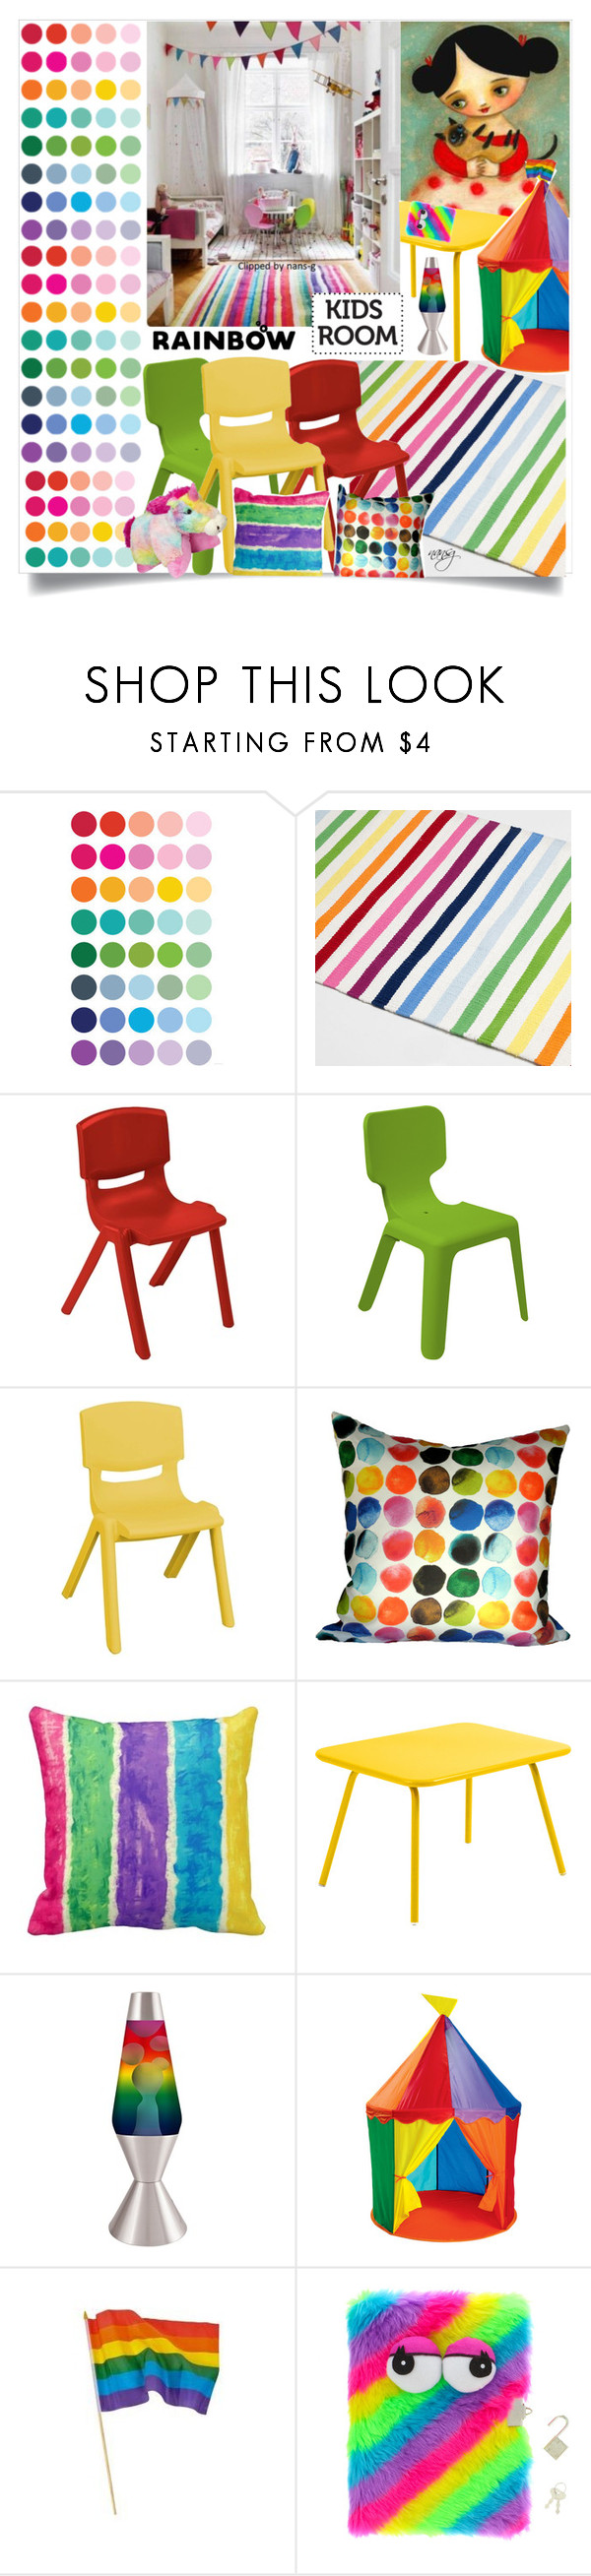 """Rainbow Kids Room"" by nans-g on Polyvore featuring interior, interiors, interior design, home, home decor, interior decorating, Zara Home, Me Too, Fermob and Universal Lighting and Decor"